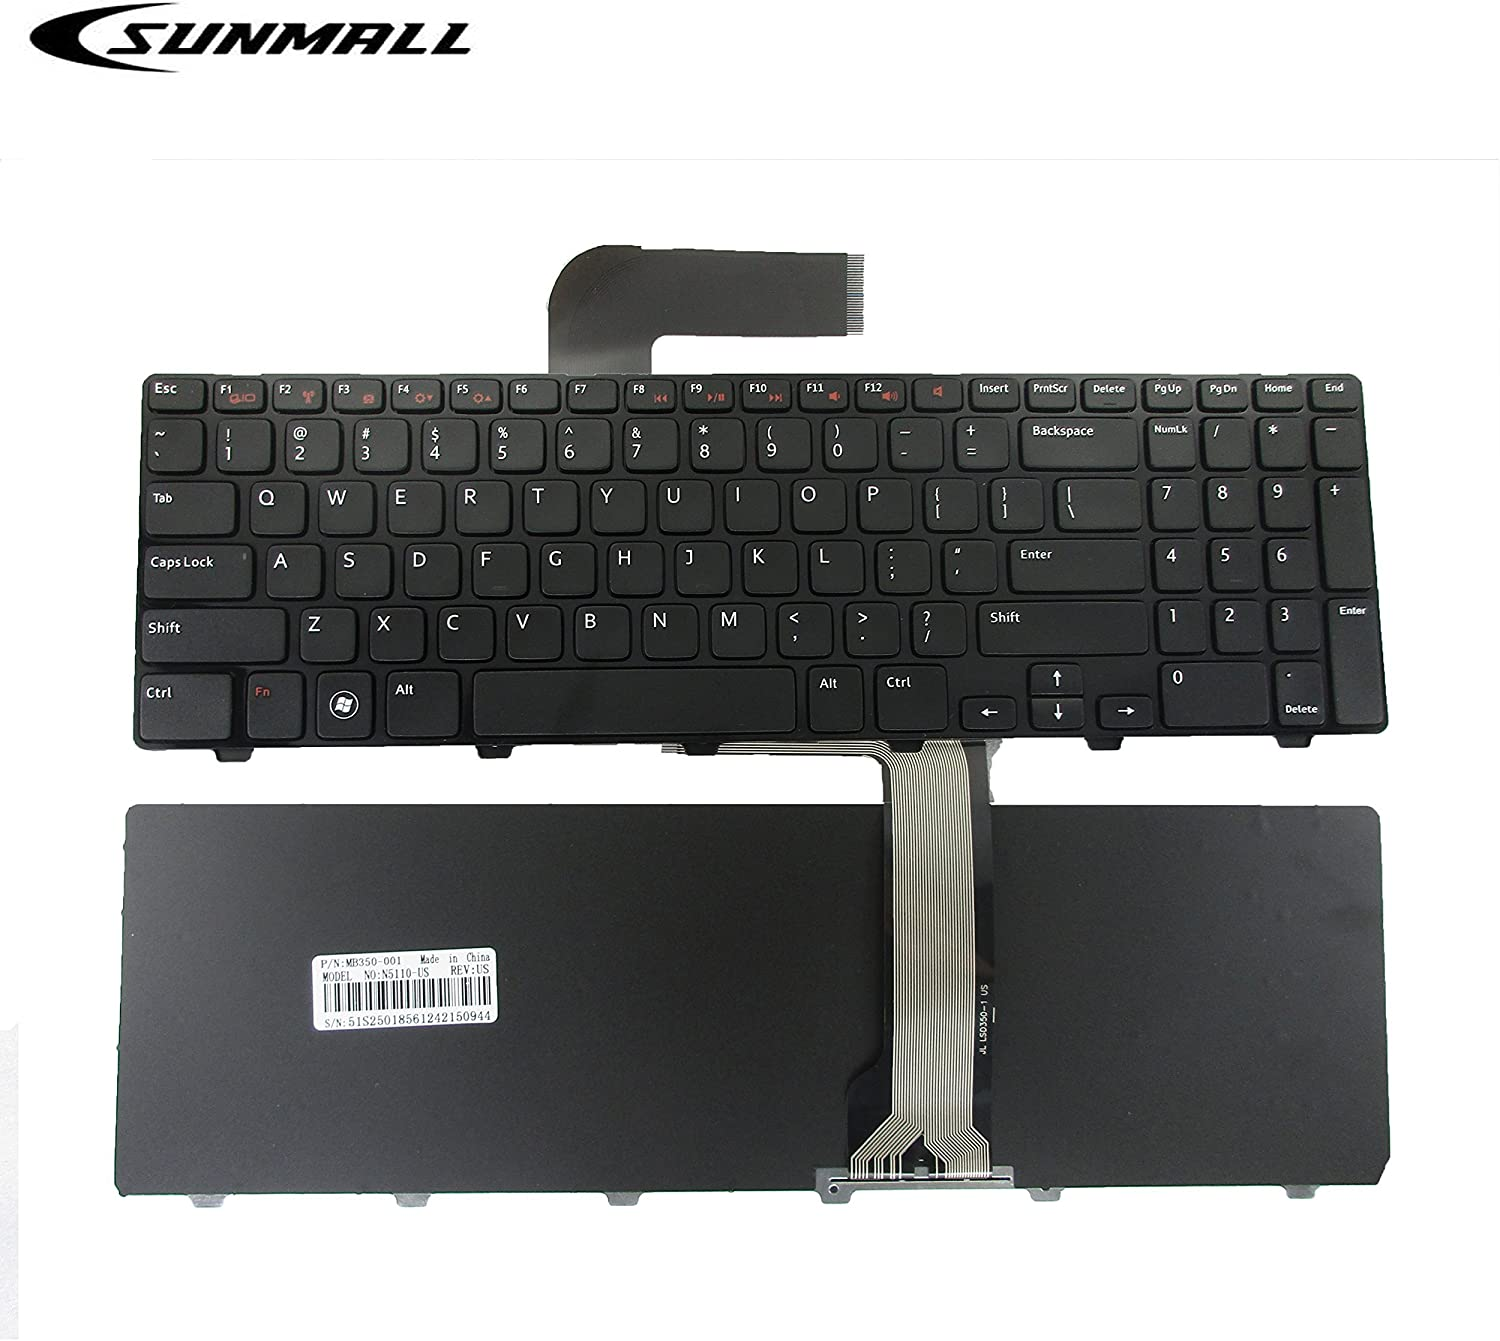 N5110 Keyboard for DELL Inspiron,SUNMALL Replacement Laptop Keyboard with Frame for DELL Inspiron 15R N5110 M501Z M511R Ins15RD-2528 2728 2428